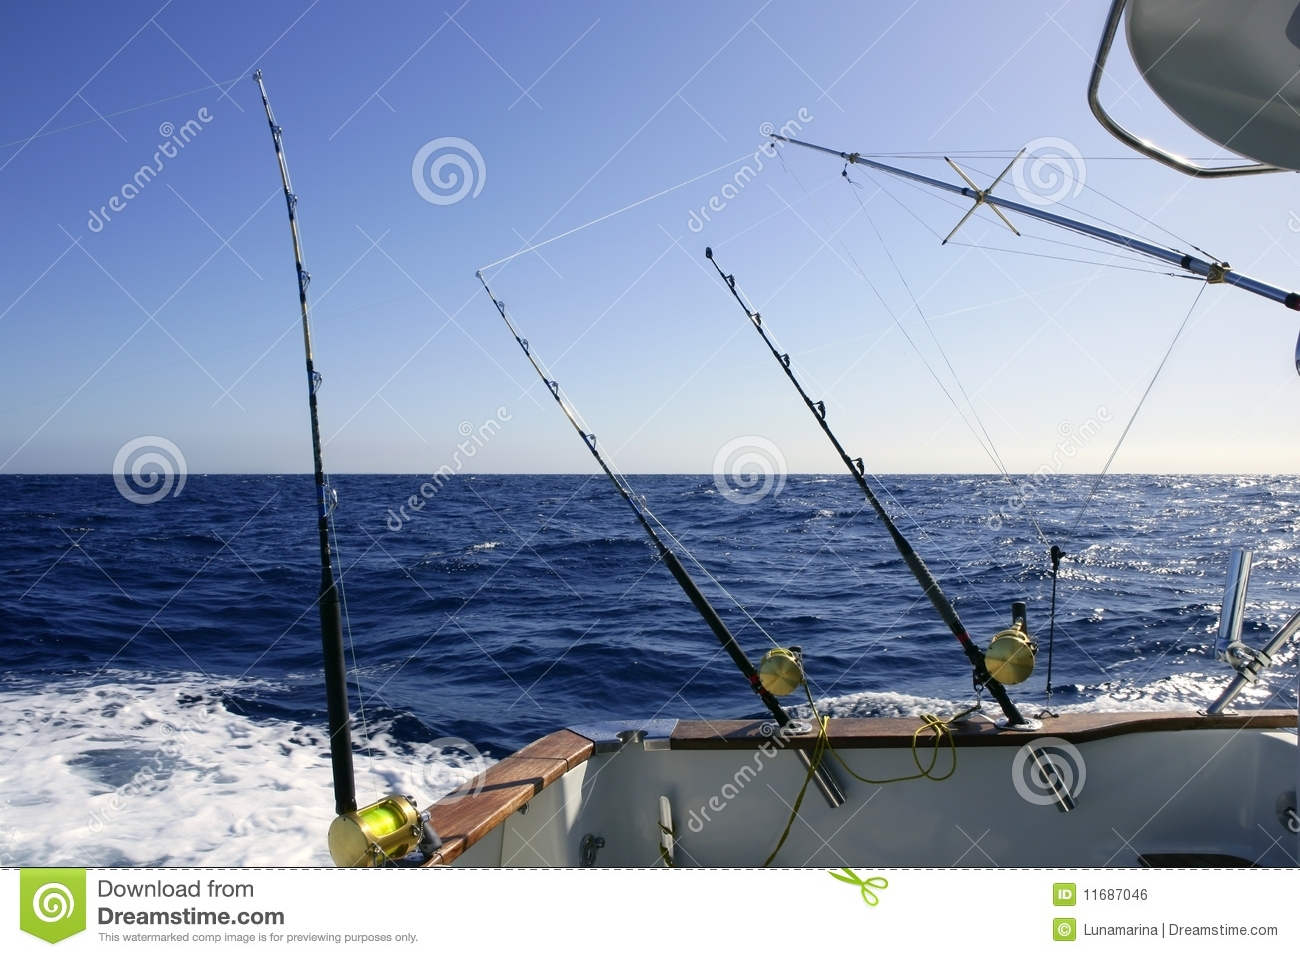 Get free plans for fishing boat junk her for Sea fishing games